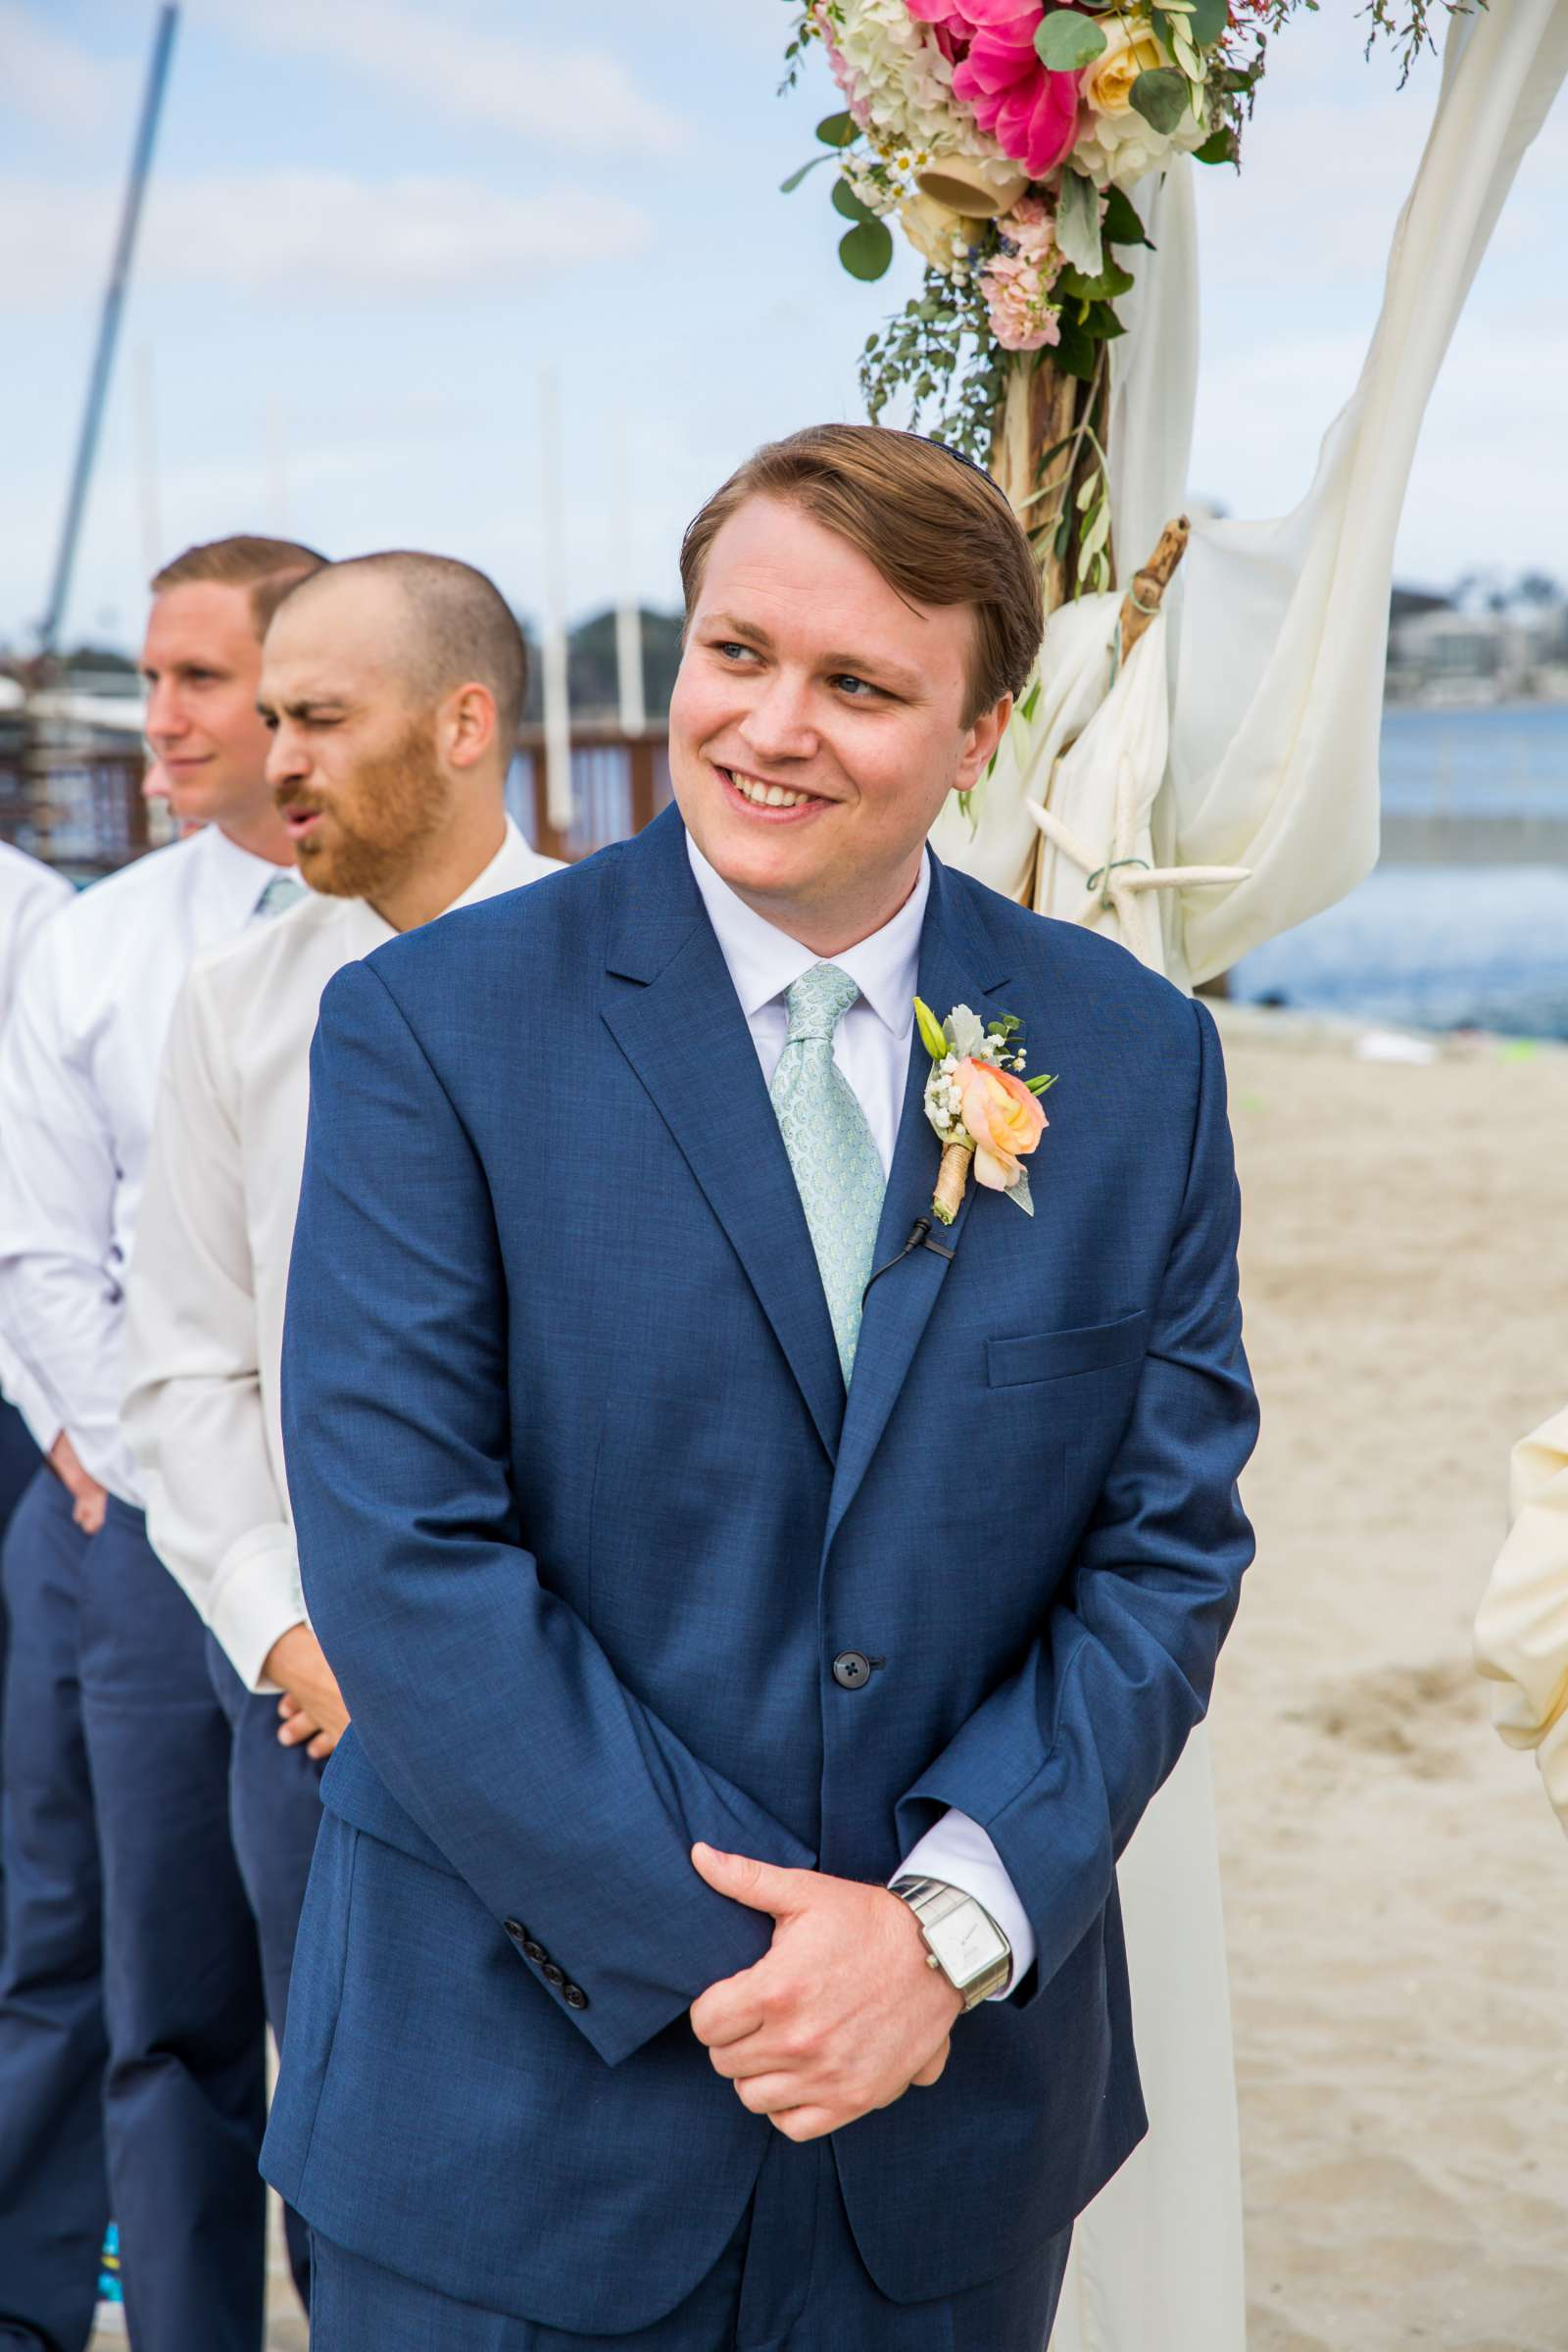 Catamaran Resort Wedding coordinated by Lavish Weddings, Brittany and David Wedding Photo #66 by True Photography